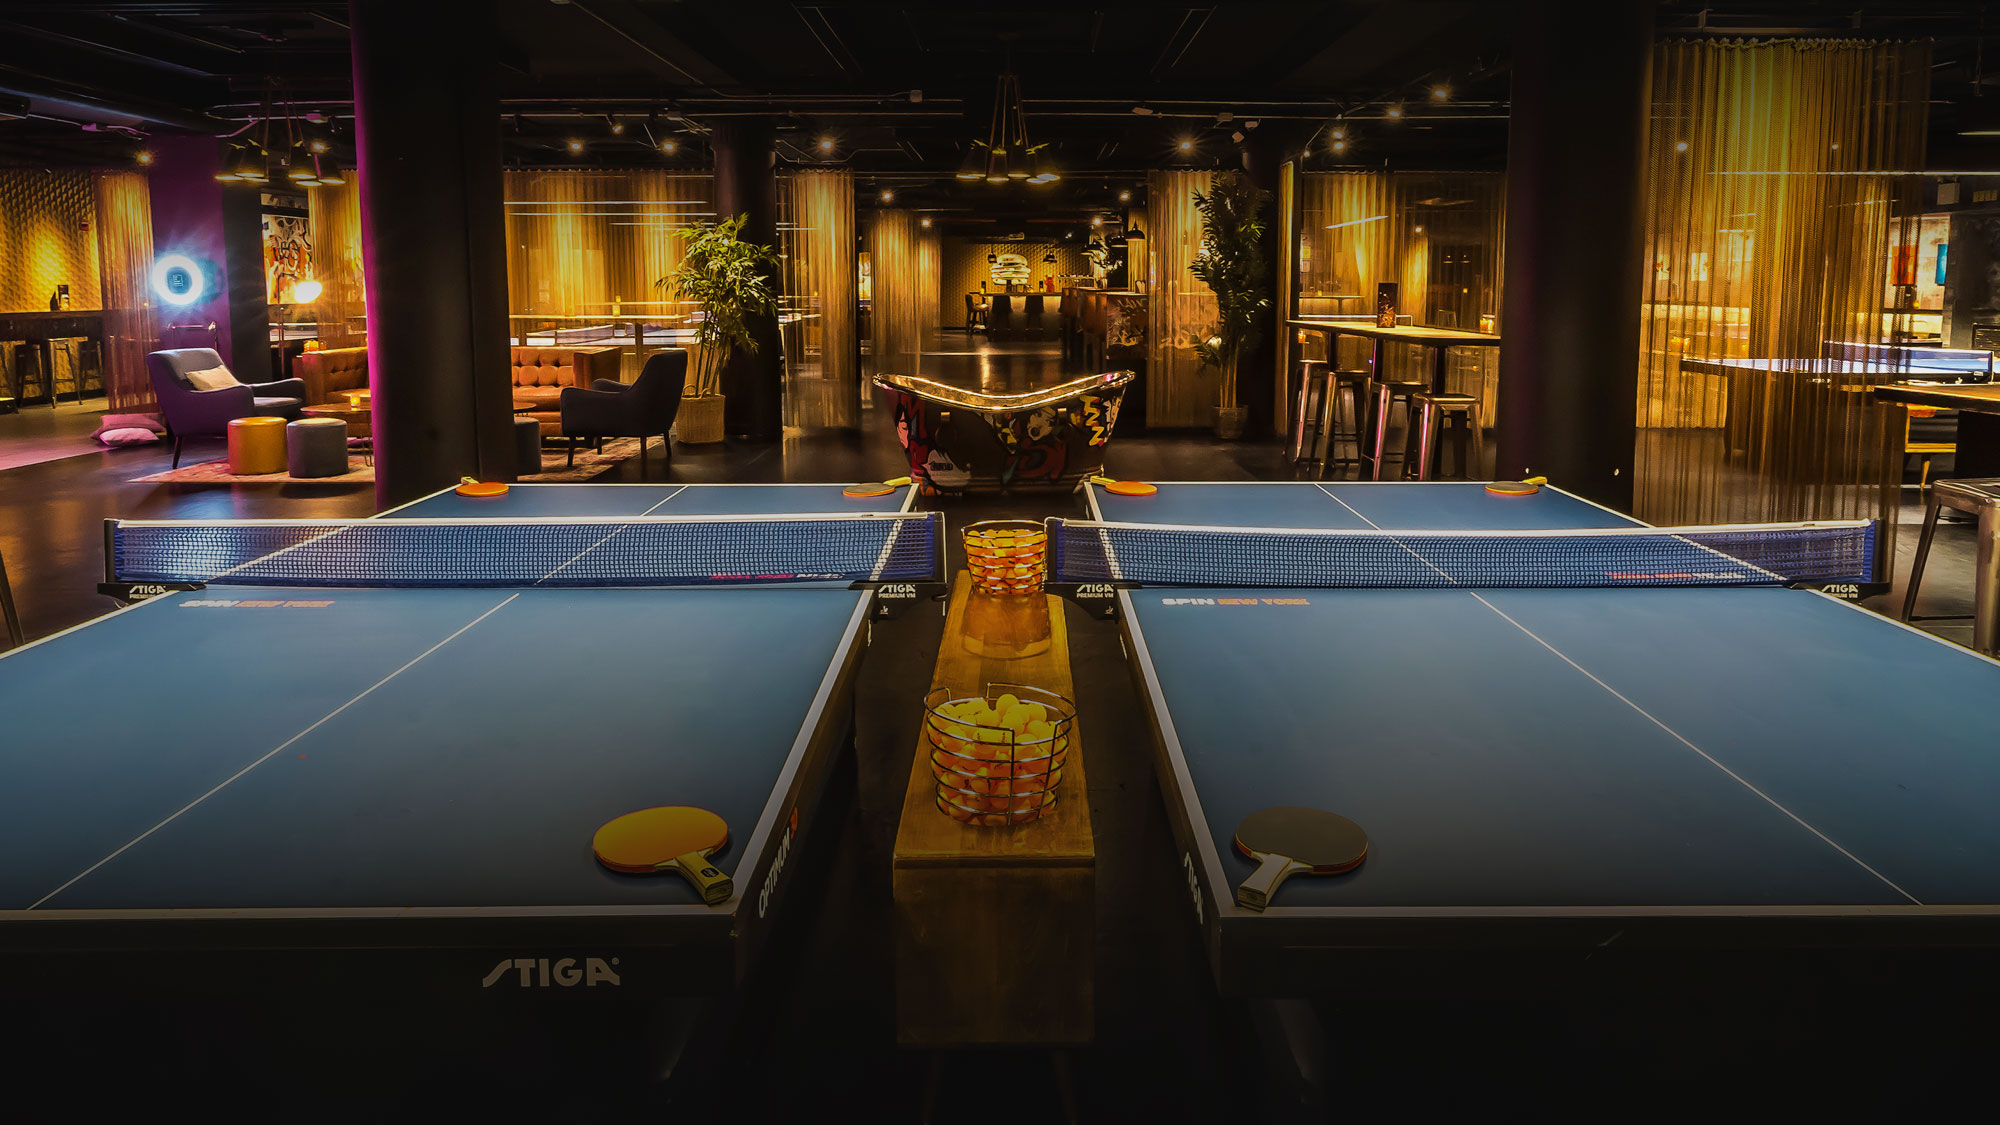 Ping pong or a drink at the bar?